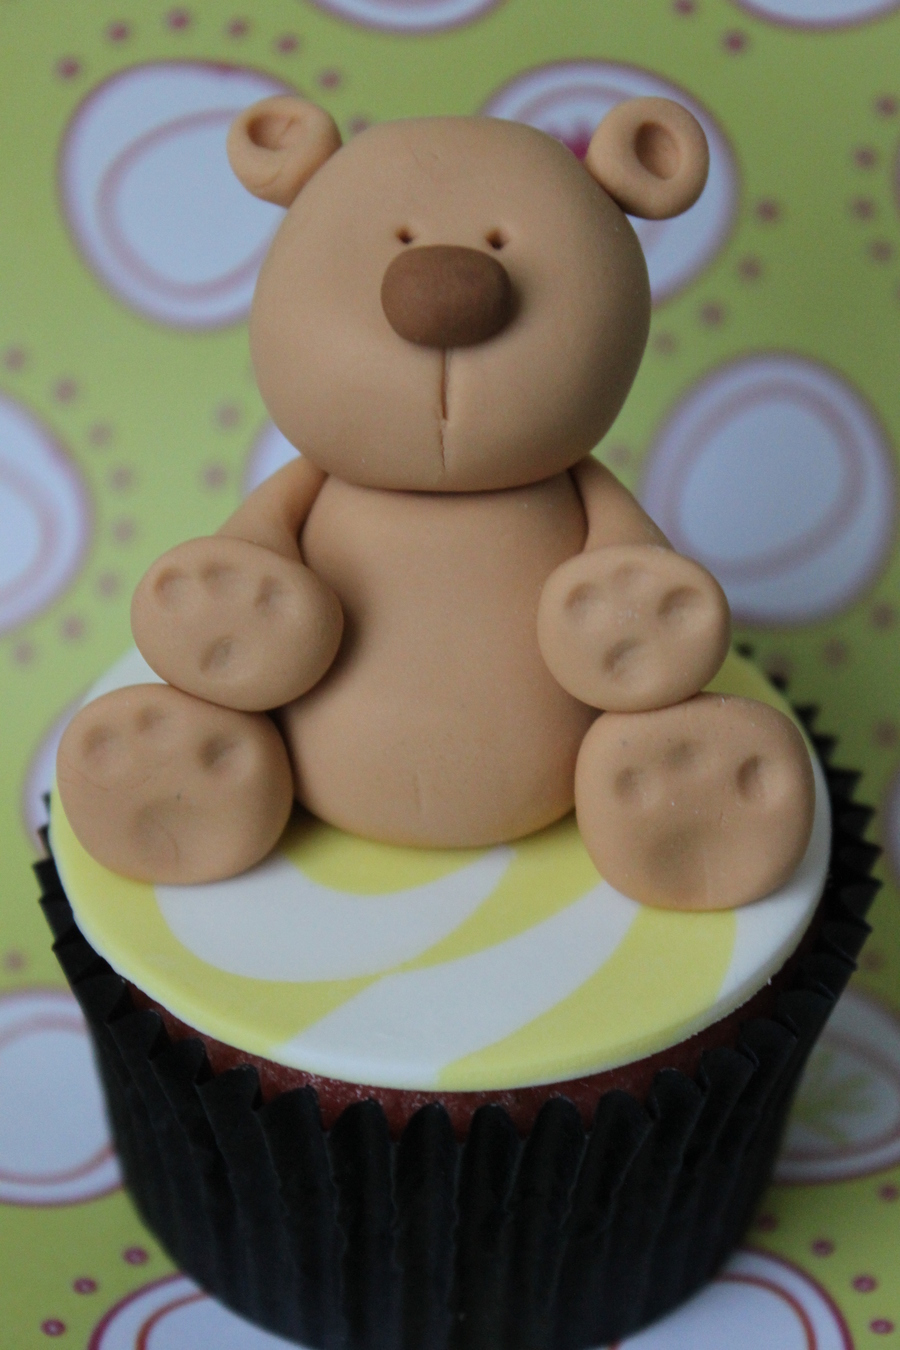 Tan Little Teddy  on Cake Central